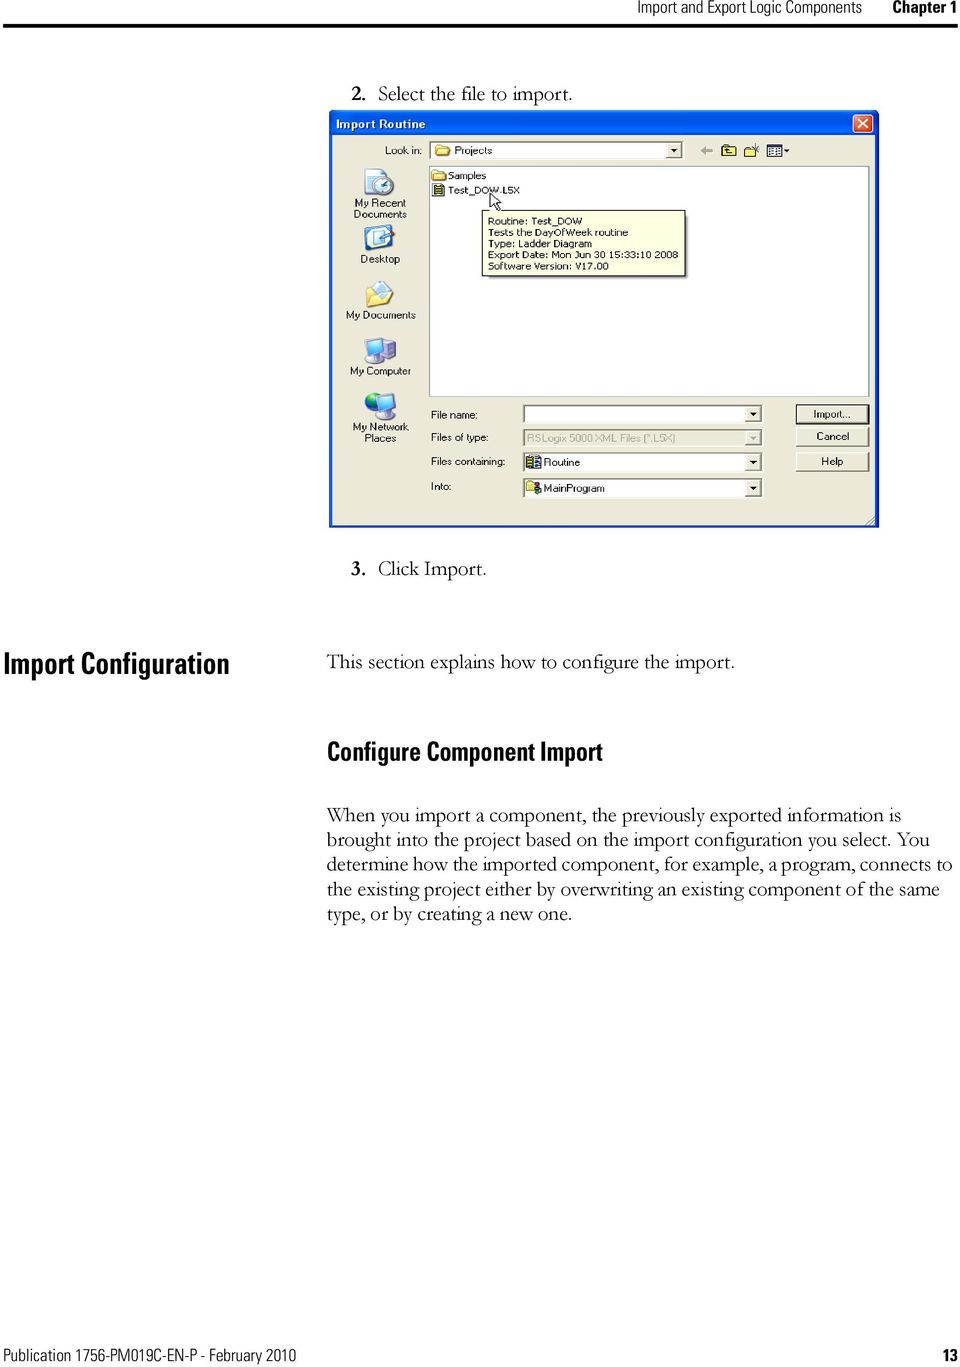 Configure Component Import When you import a component, the previously exported information is brought into the project based on the import